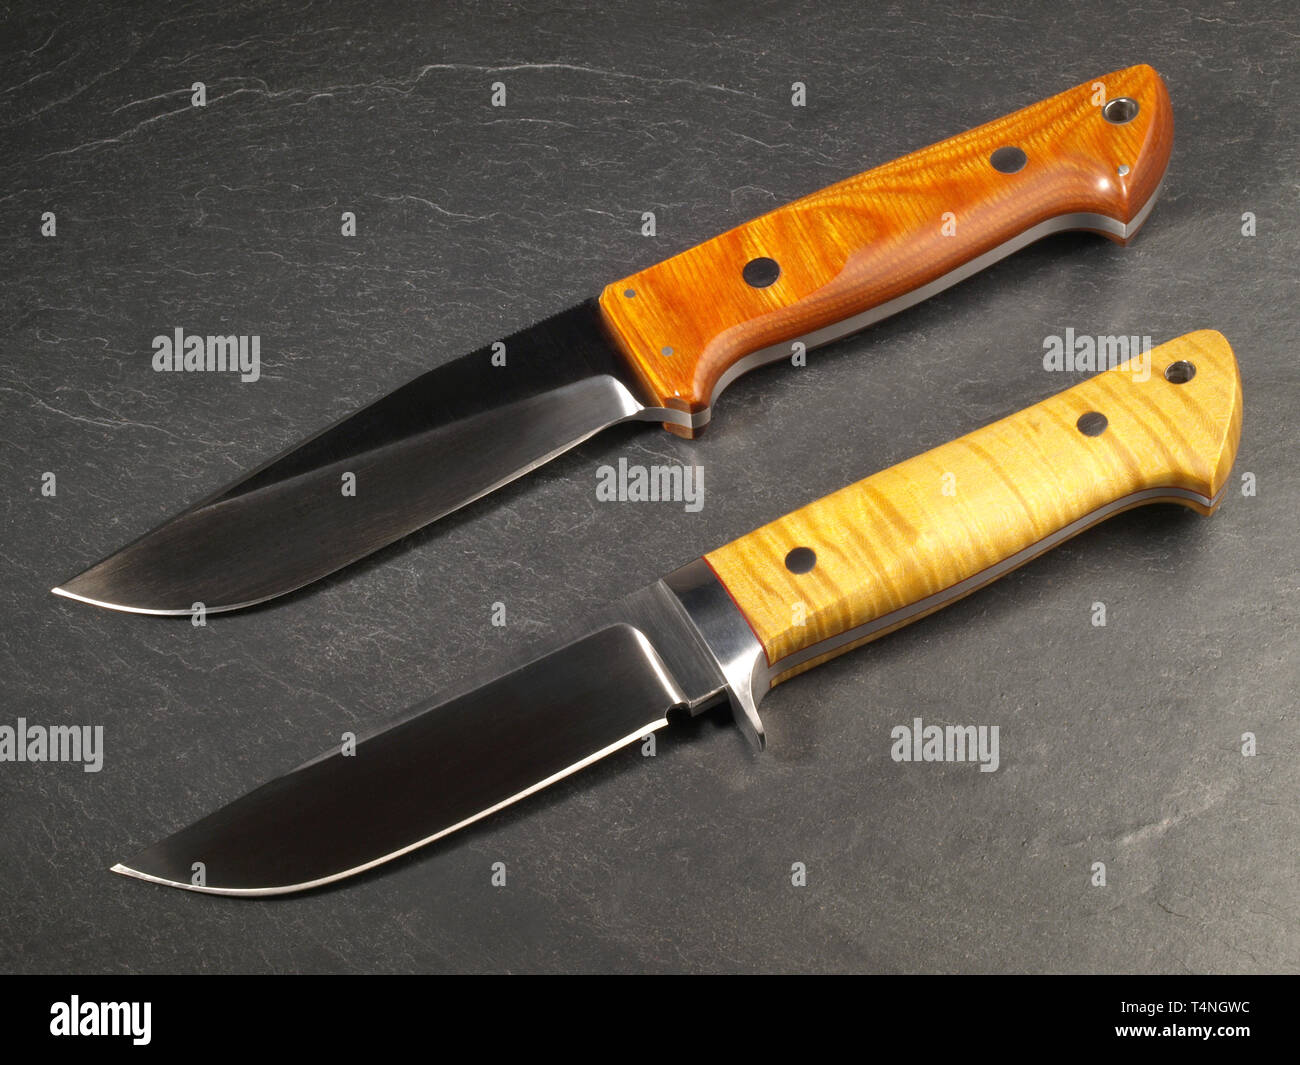 Unique Hunting Knives on Slate Background Stock Photo